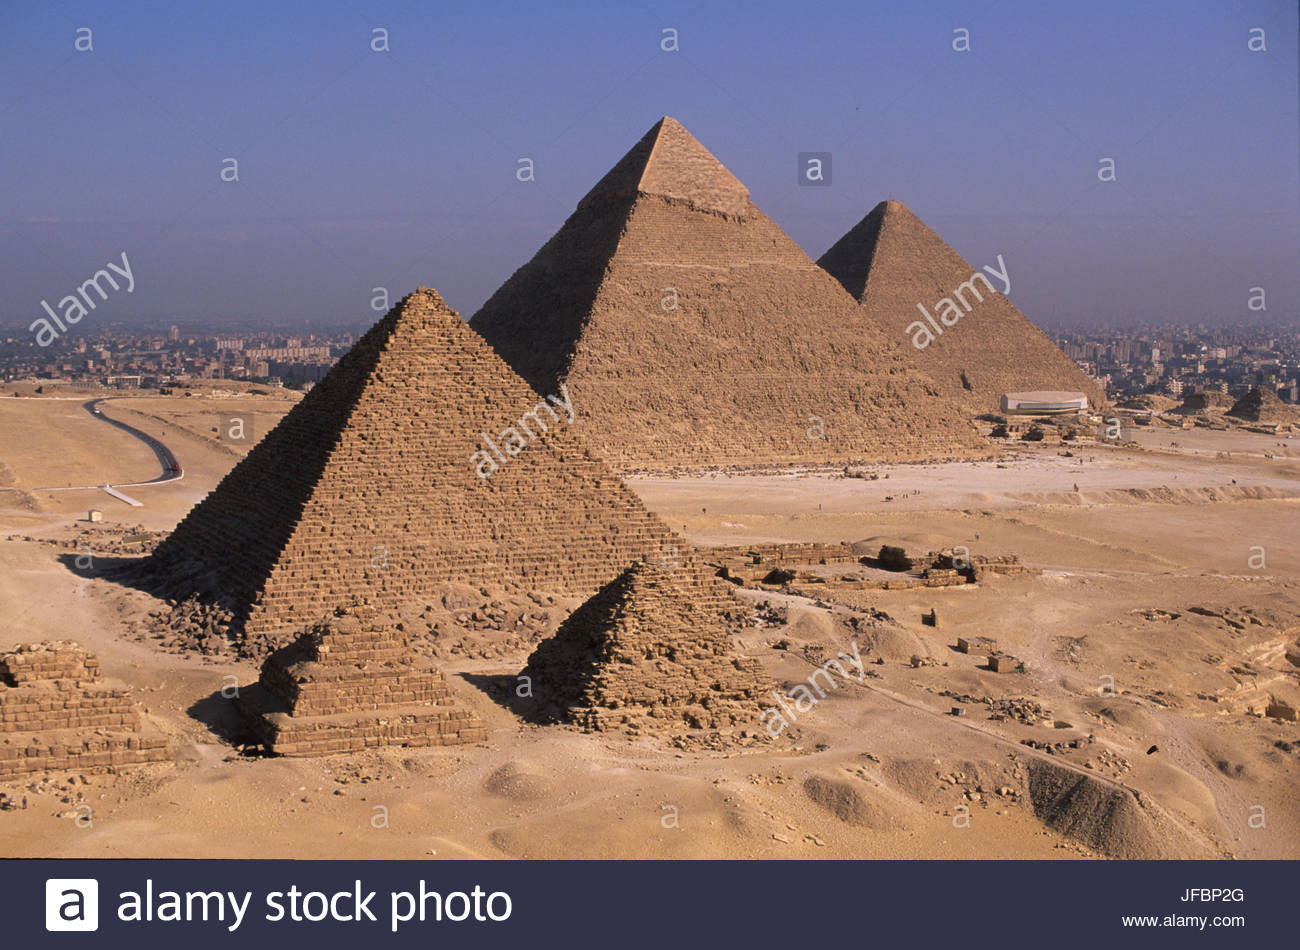 Pyramids of Giza. - Stock Image